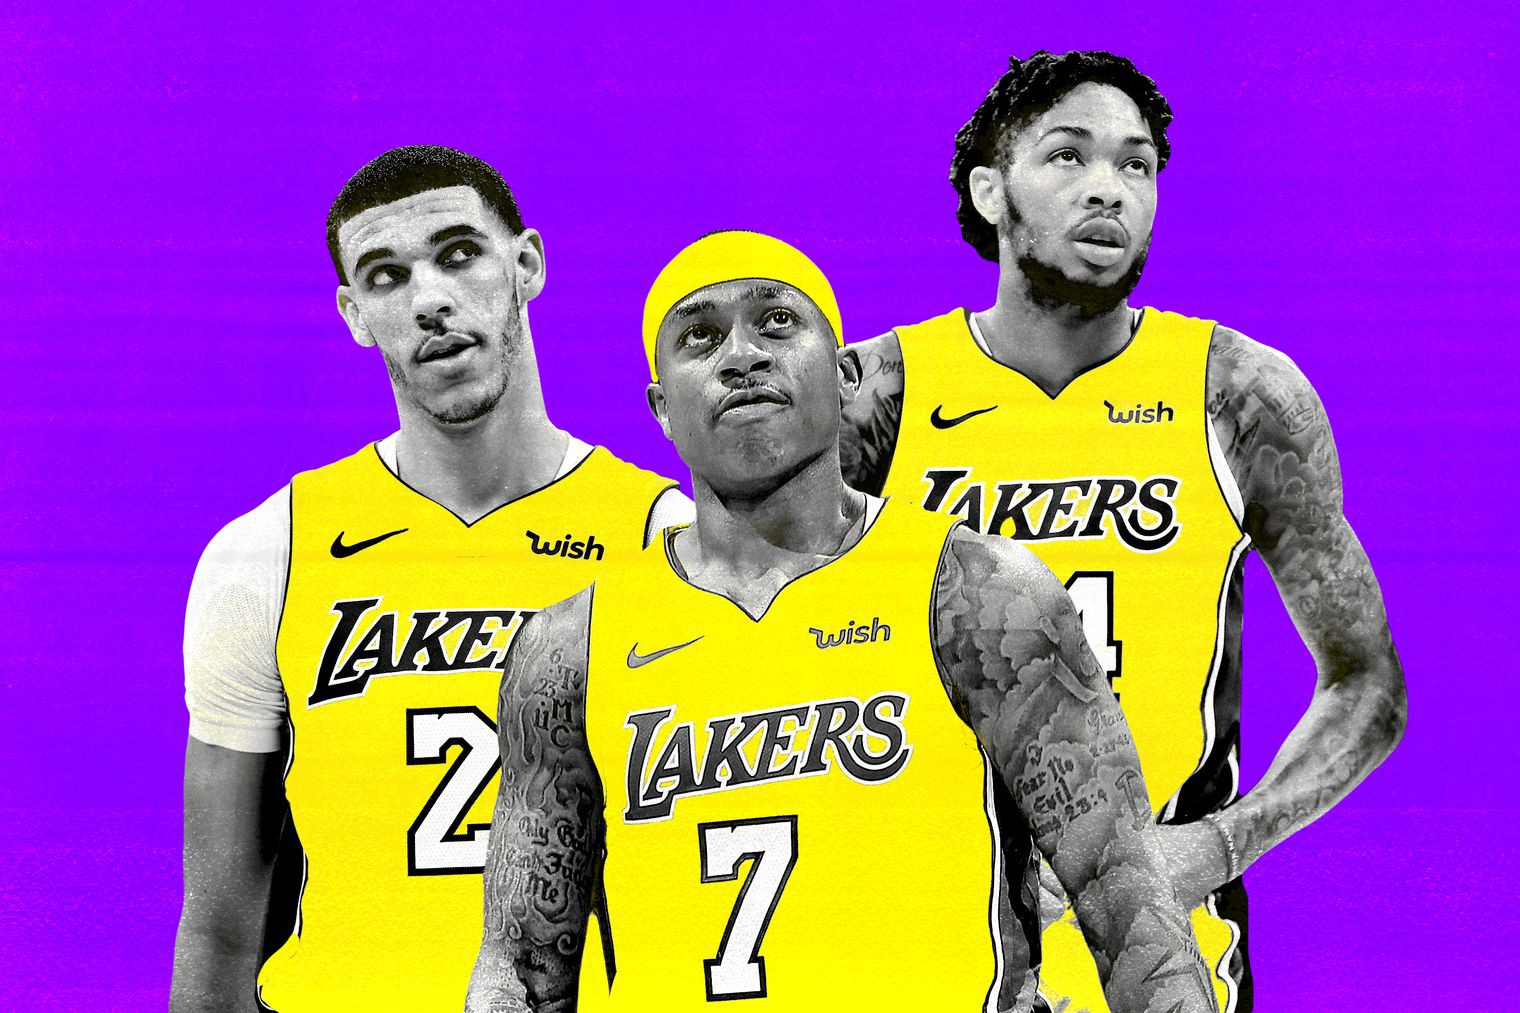 c8197048b2e The Los Angeles Lakers are coming of age right before our very own eyes.  While still a long shot to make the playoffs